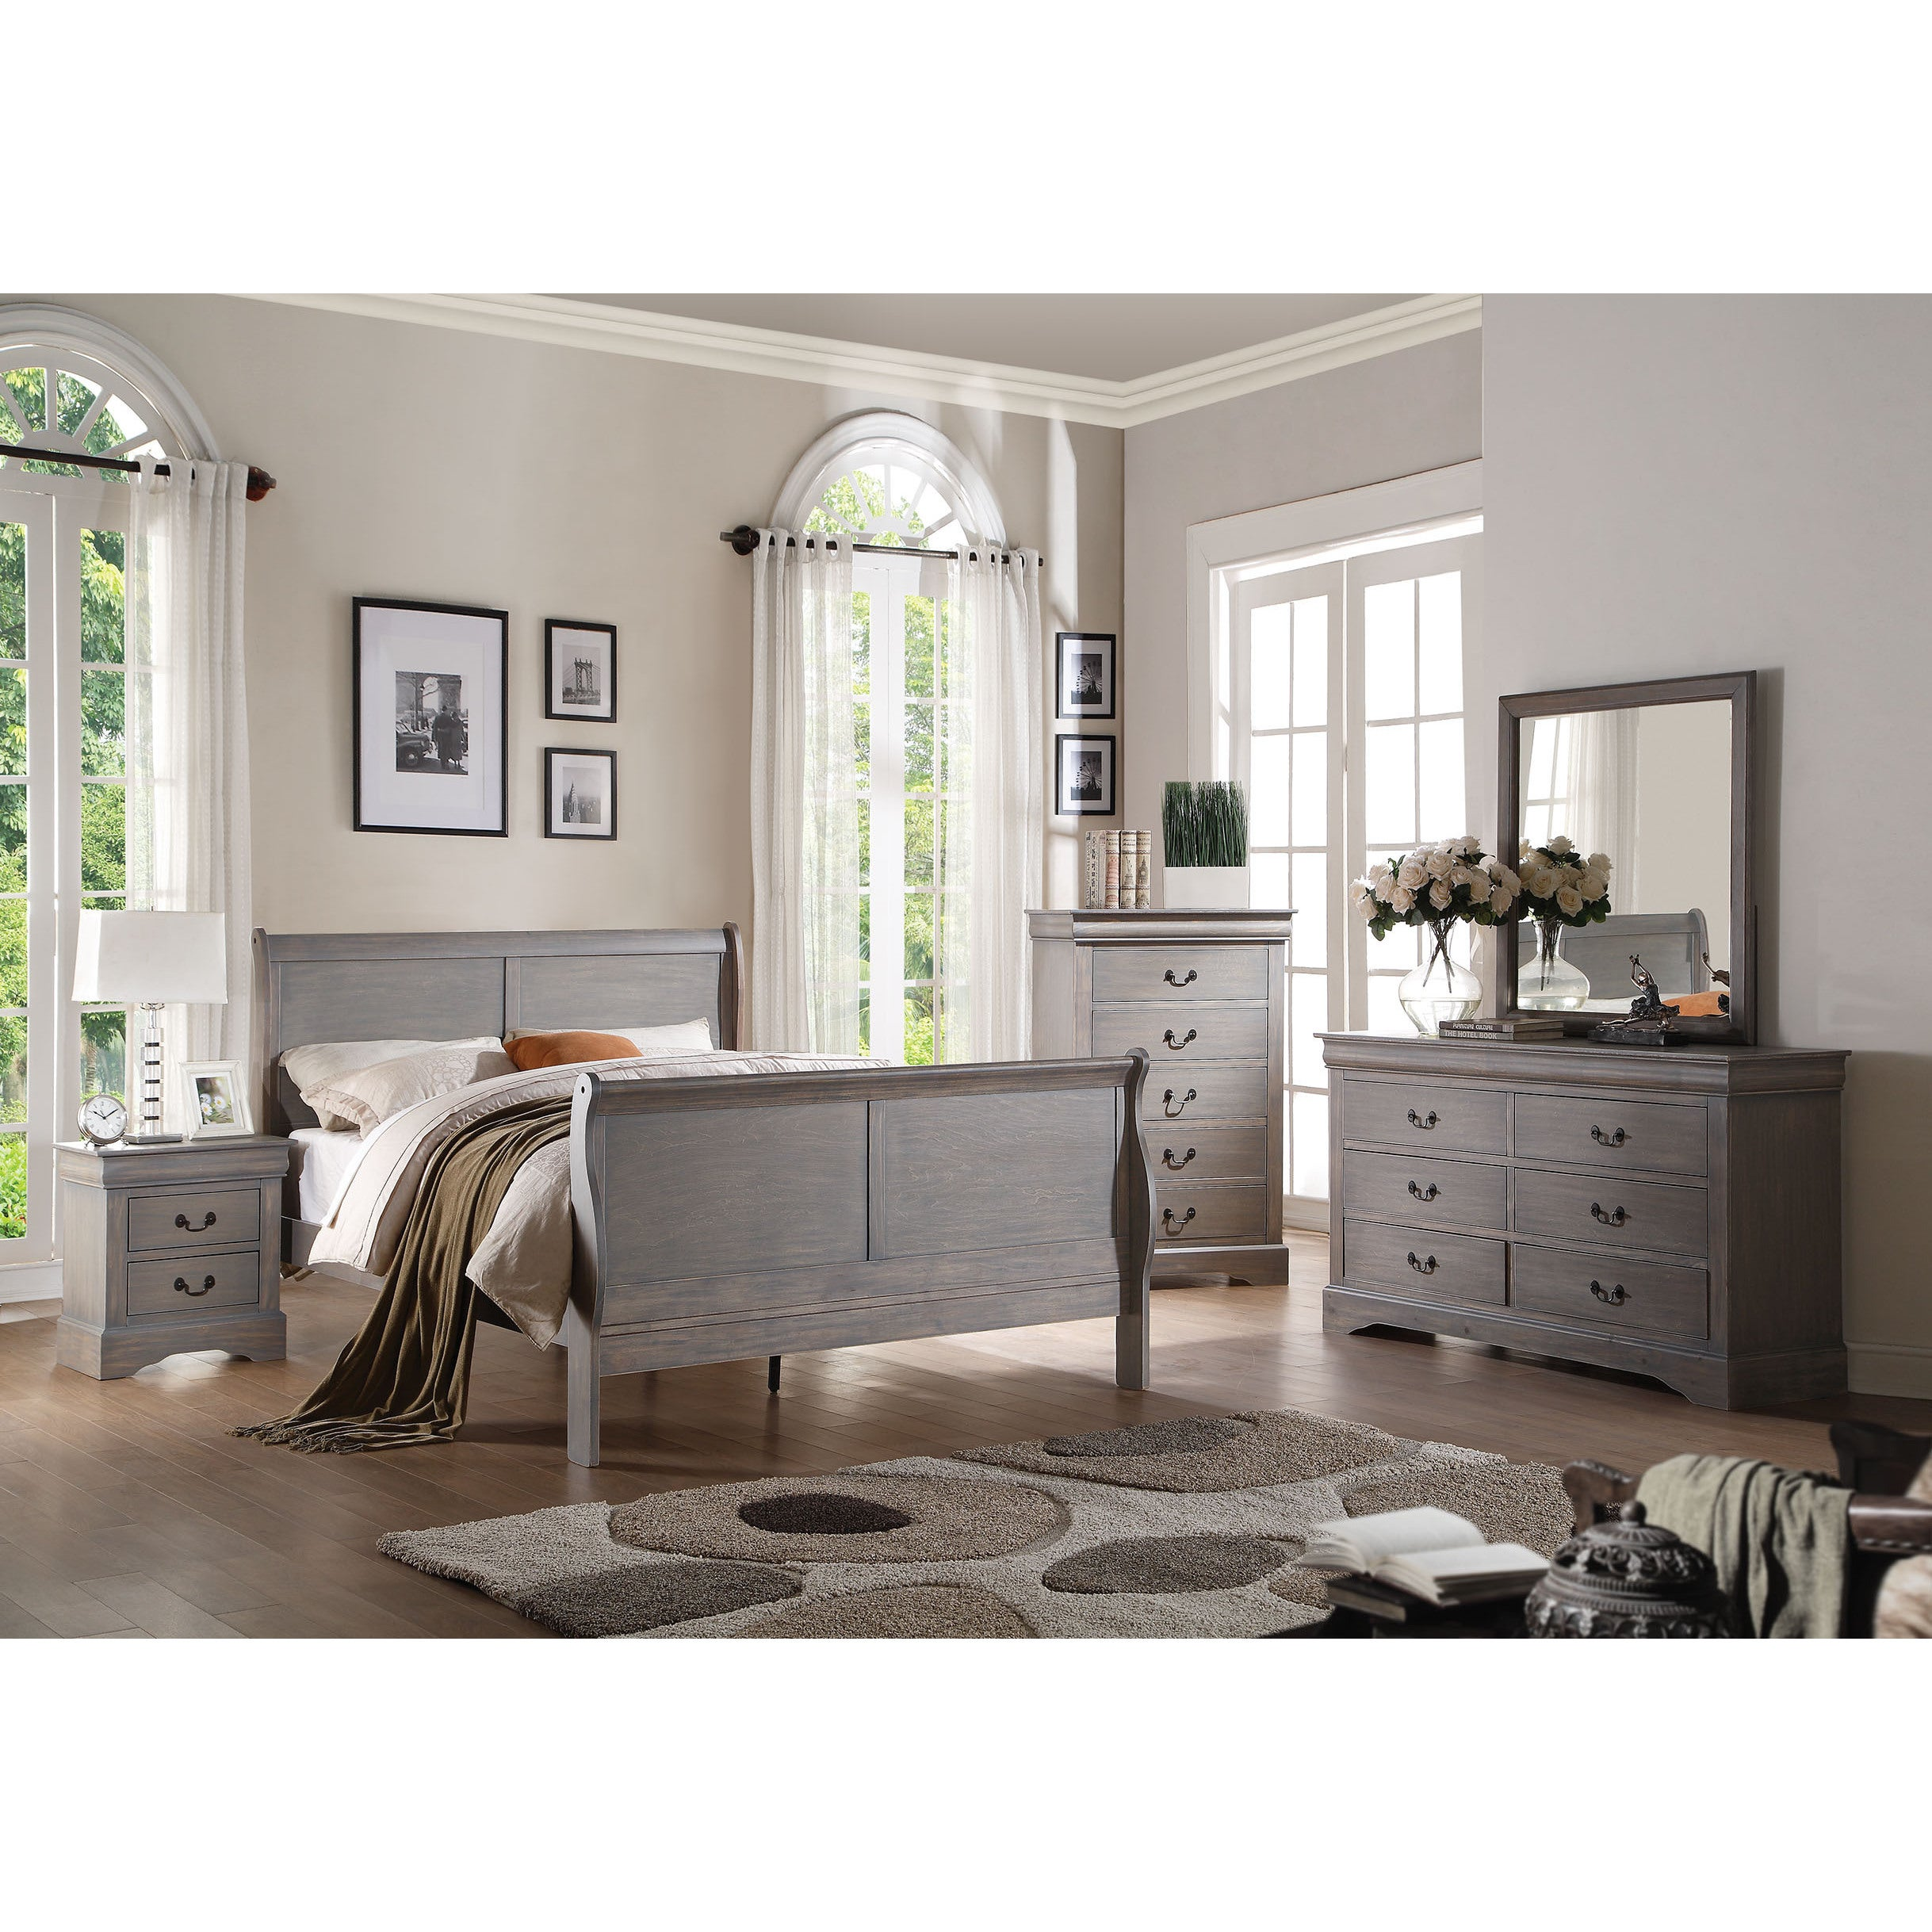 Size: Full · 4 Piece Bedroom Set In Antique Grey (4 Options Available)